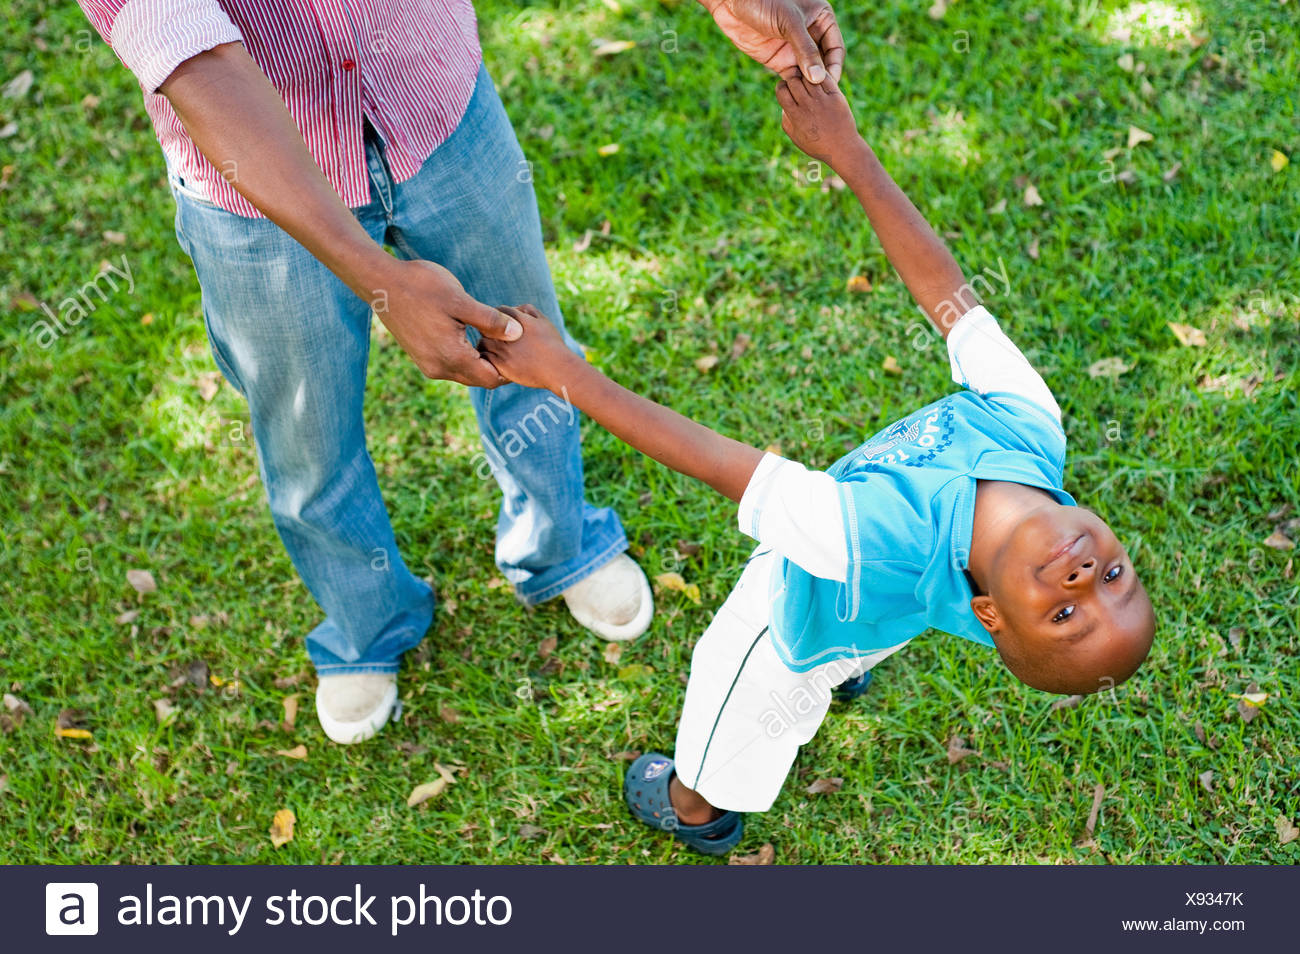 Boy (4-5) playing with father on lawn in garden, Johannesburg, Gauteng Province, South Africa - Stock Image